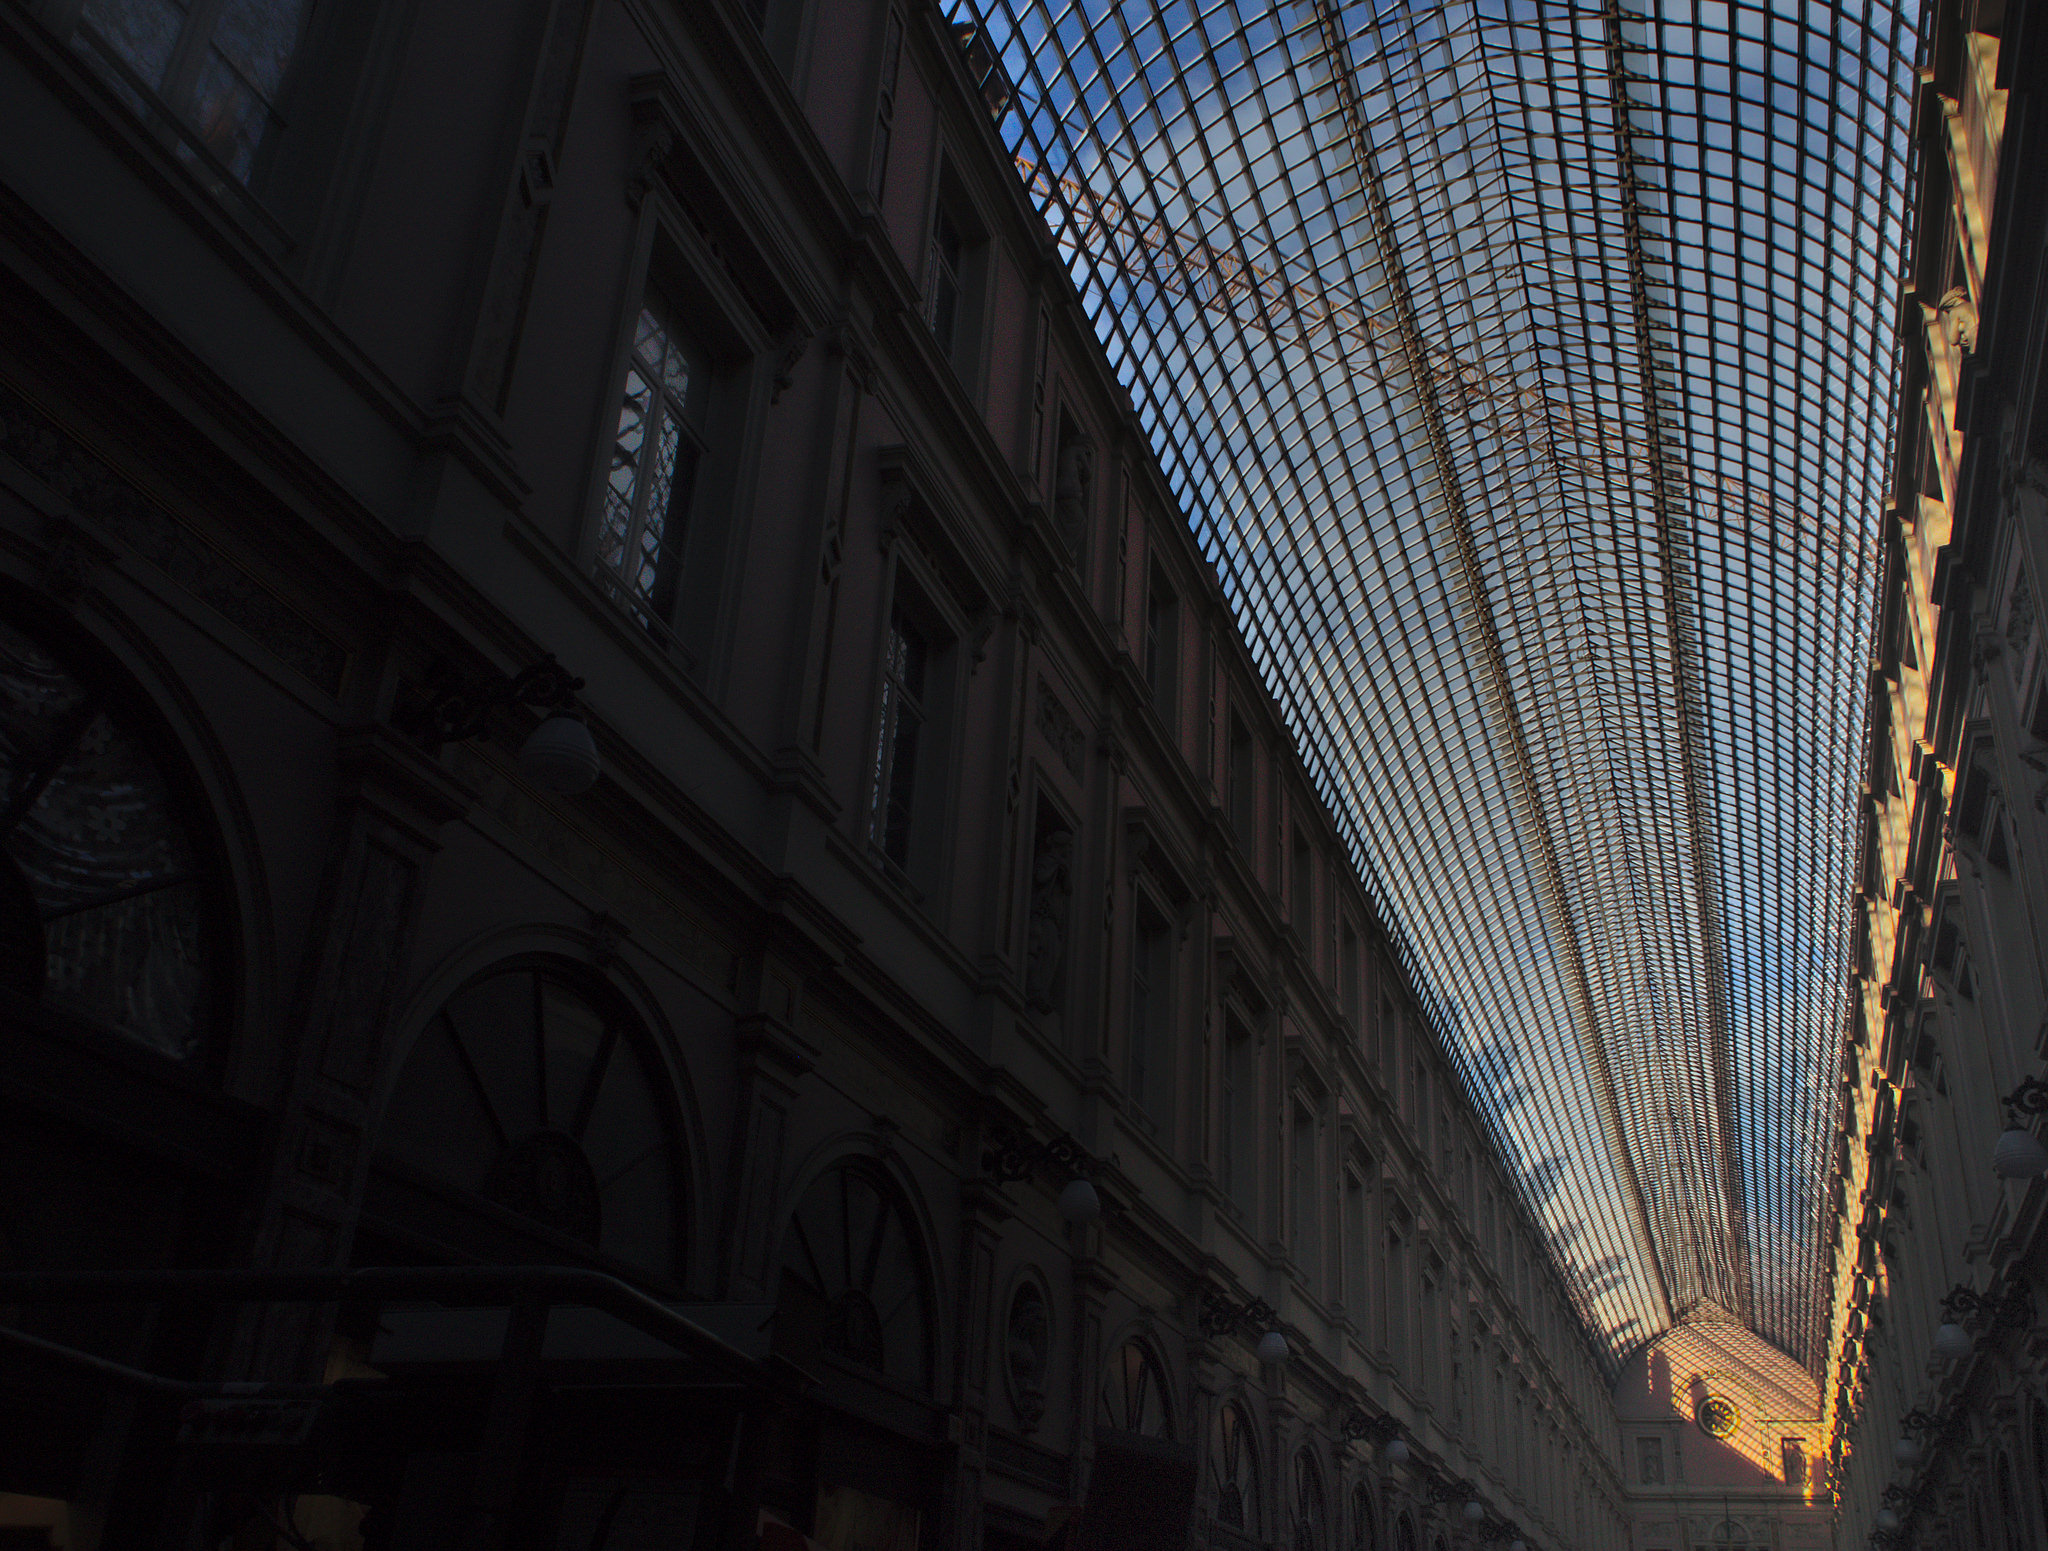 Brussels - Mall